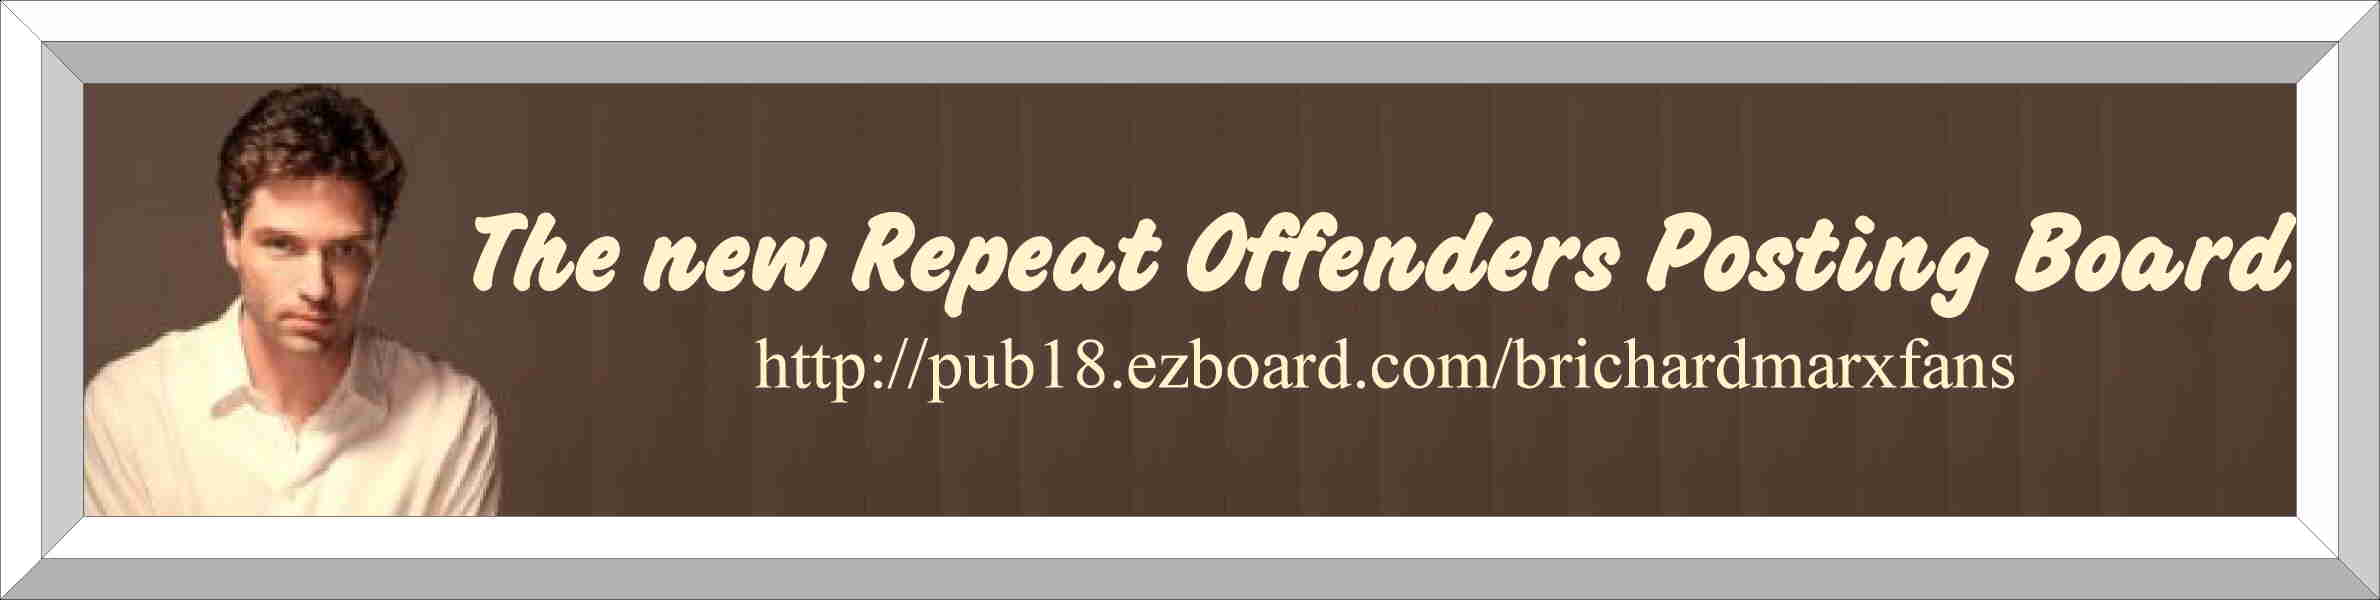 Click Here to See The New Repeat Offenders Board!